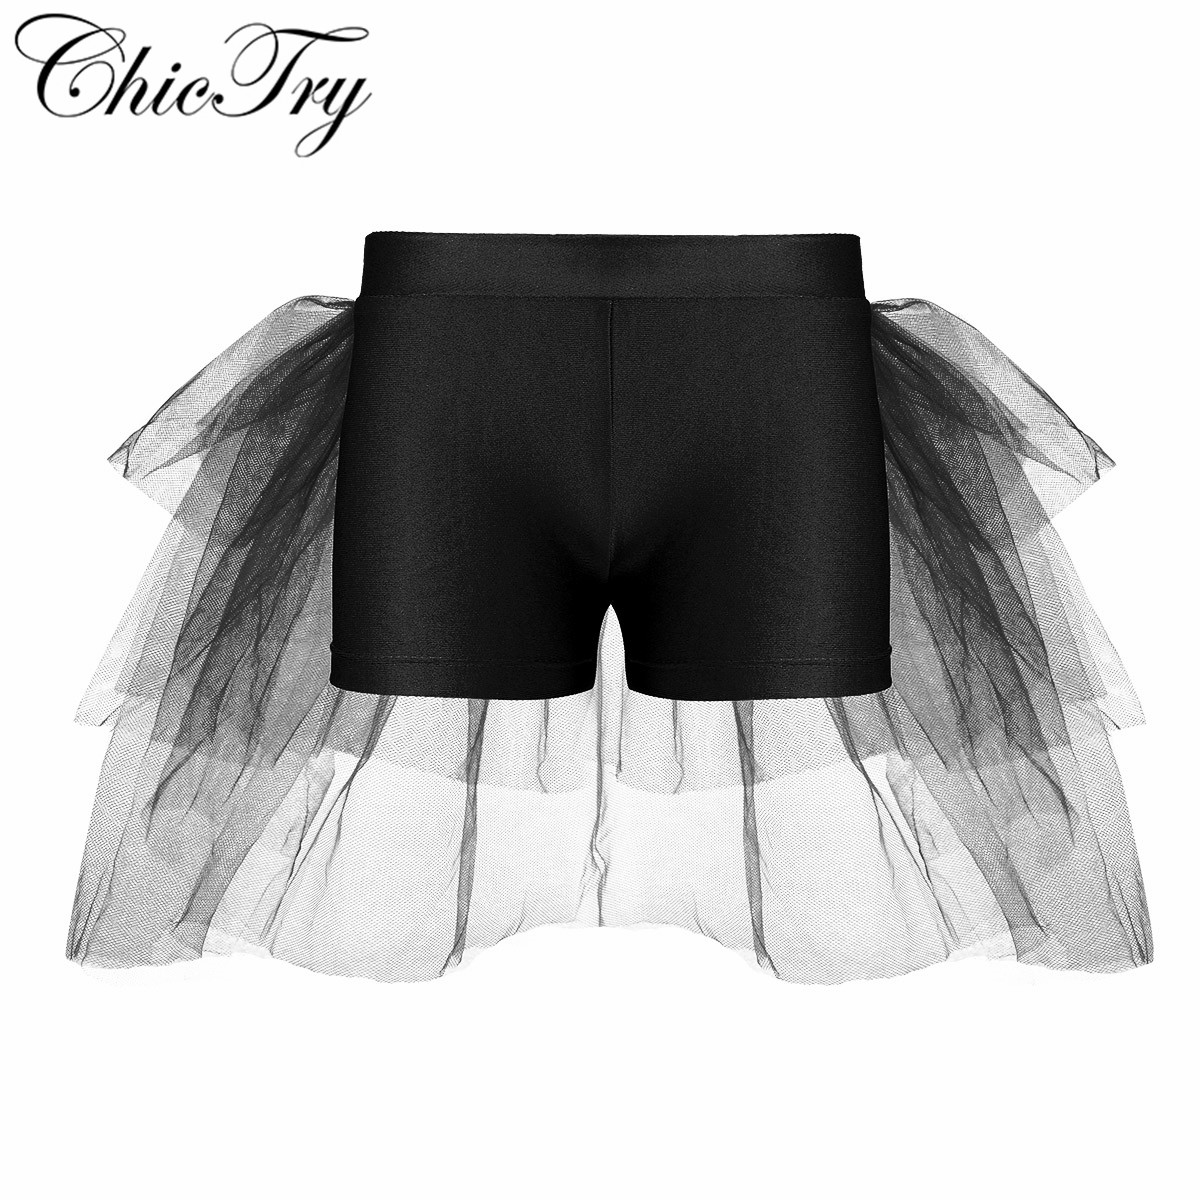 Kids Girls Children Shorts Bottoms with Attached Bustle Tiered Mesh Dance Wear Kids Shorts for Ballet Dance Stage Performance